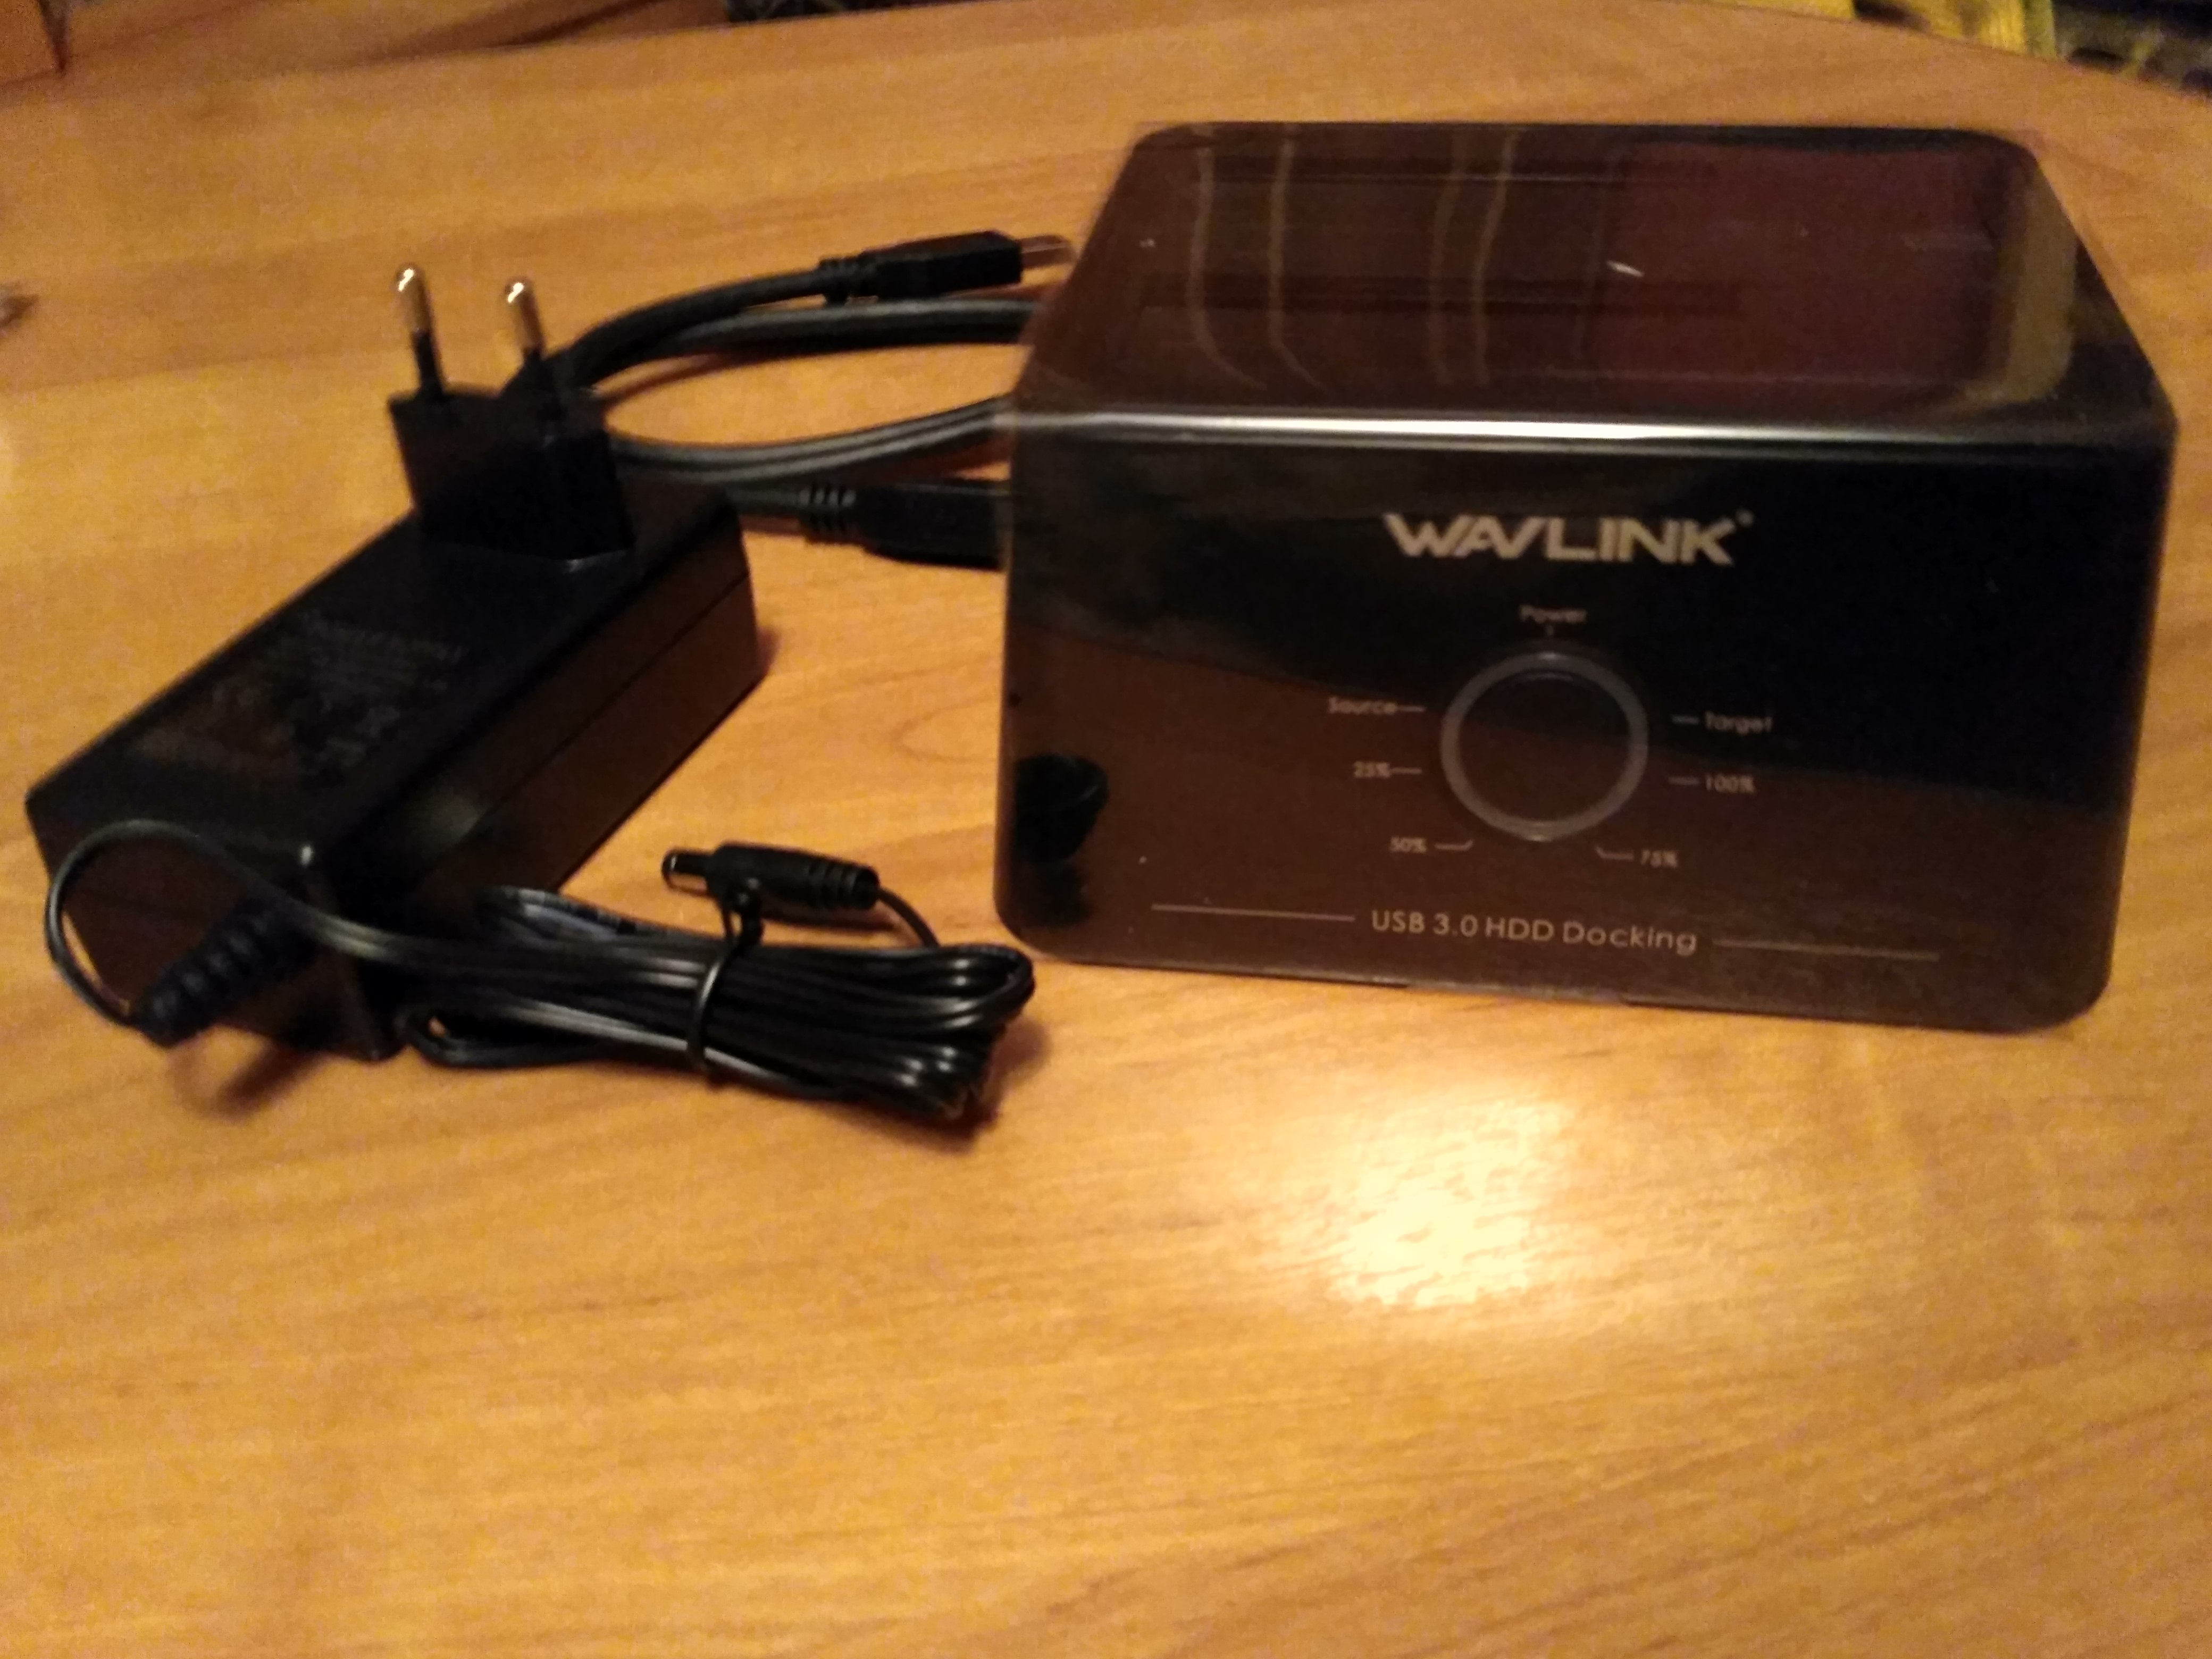 Wavlink Dual Bay SATA to USB3.0 External Hard Drive Docking Station for 2.5/3.5inch HDD/SSD Offline Clone/Backup/UASP Functions reviews №2 38713